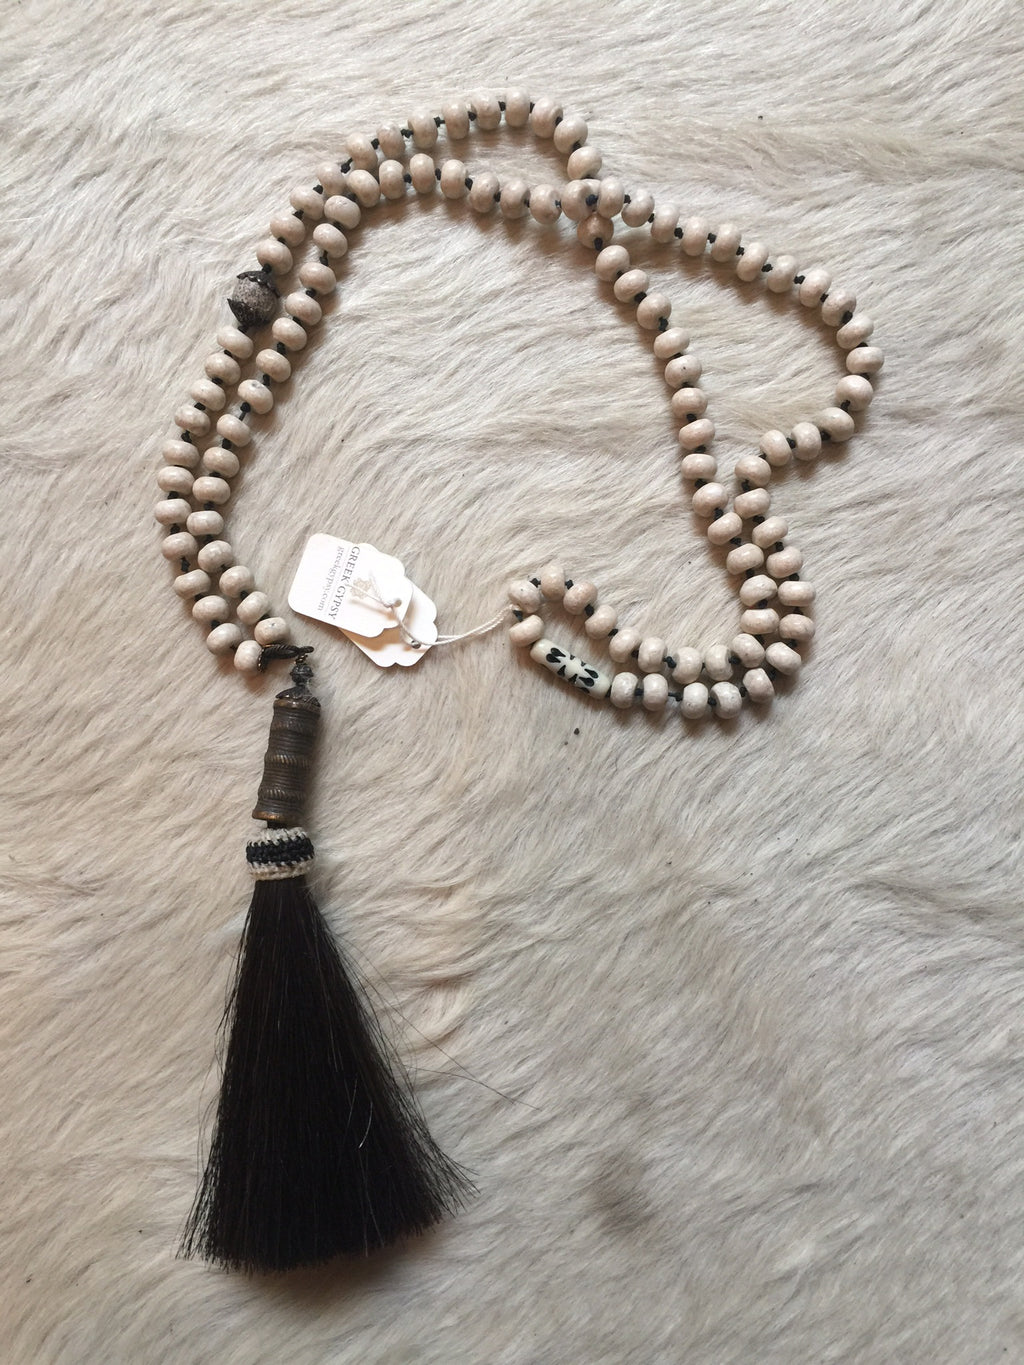 GGN31 Necklace